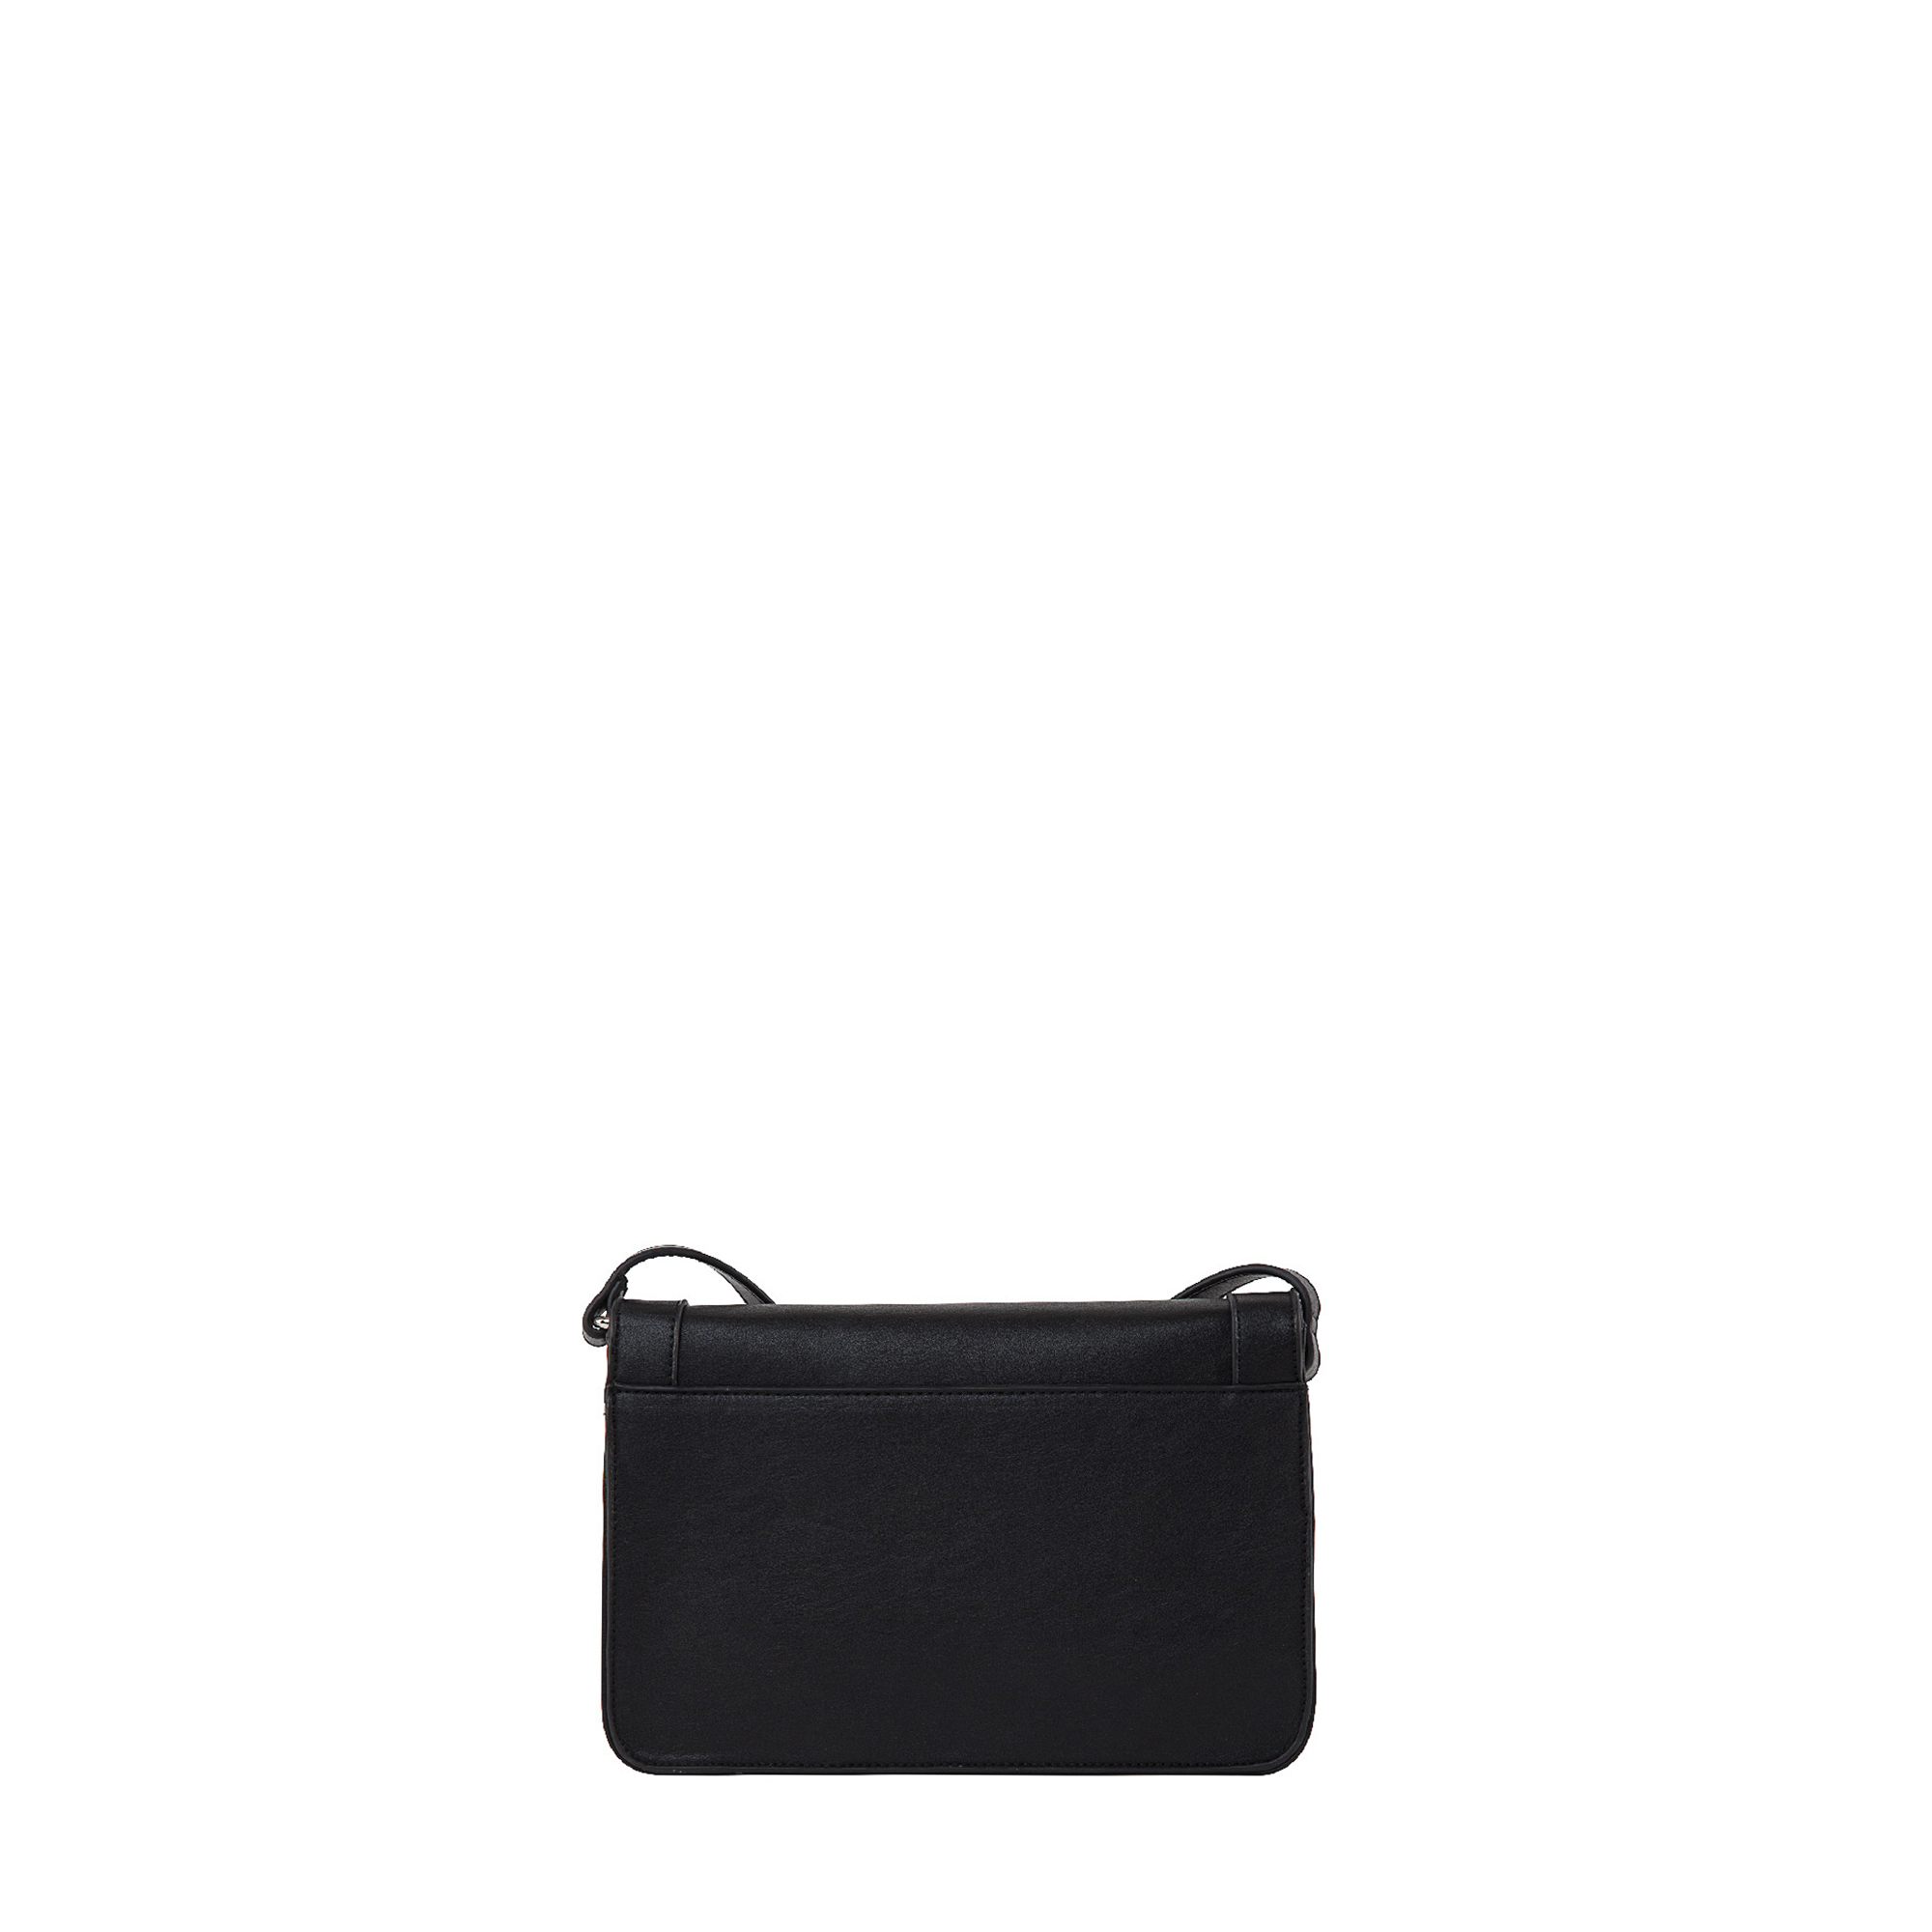 SHOULDER BAG - GBDA1222 - GAELLE PARIS